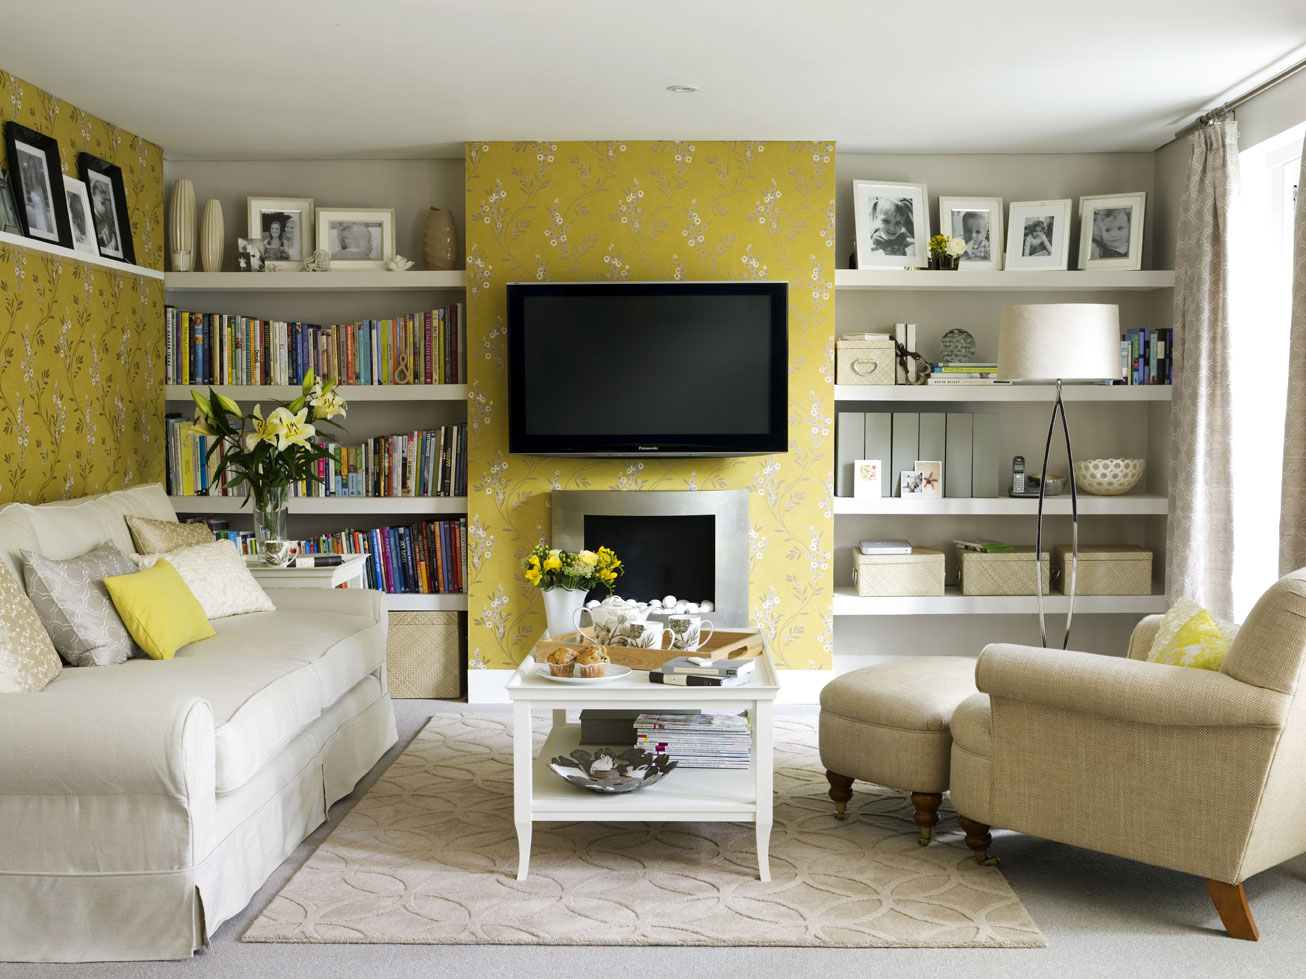 Home Decor Yellow Walls Yellow Room Interior Inspiration 55 43 Rooms For Your